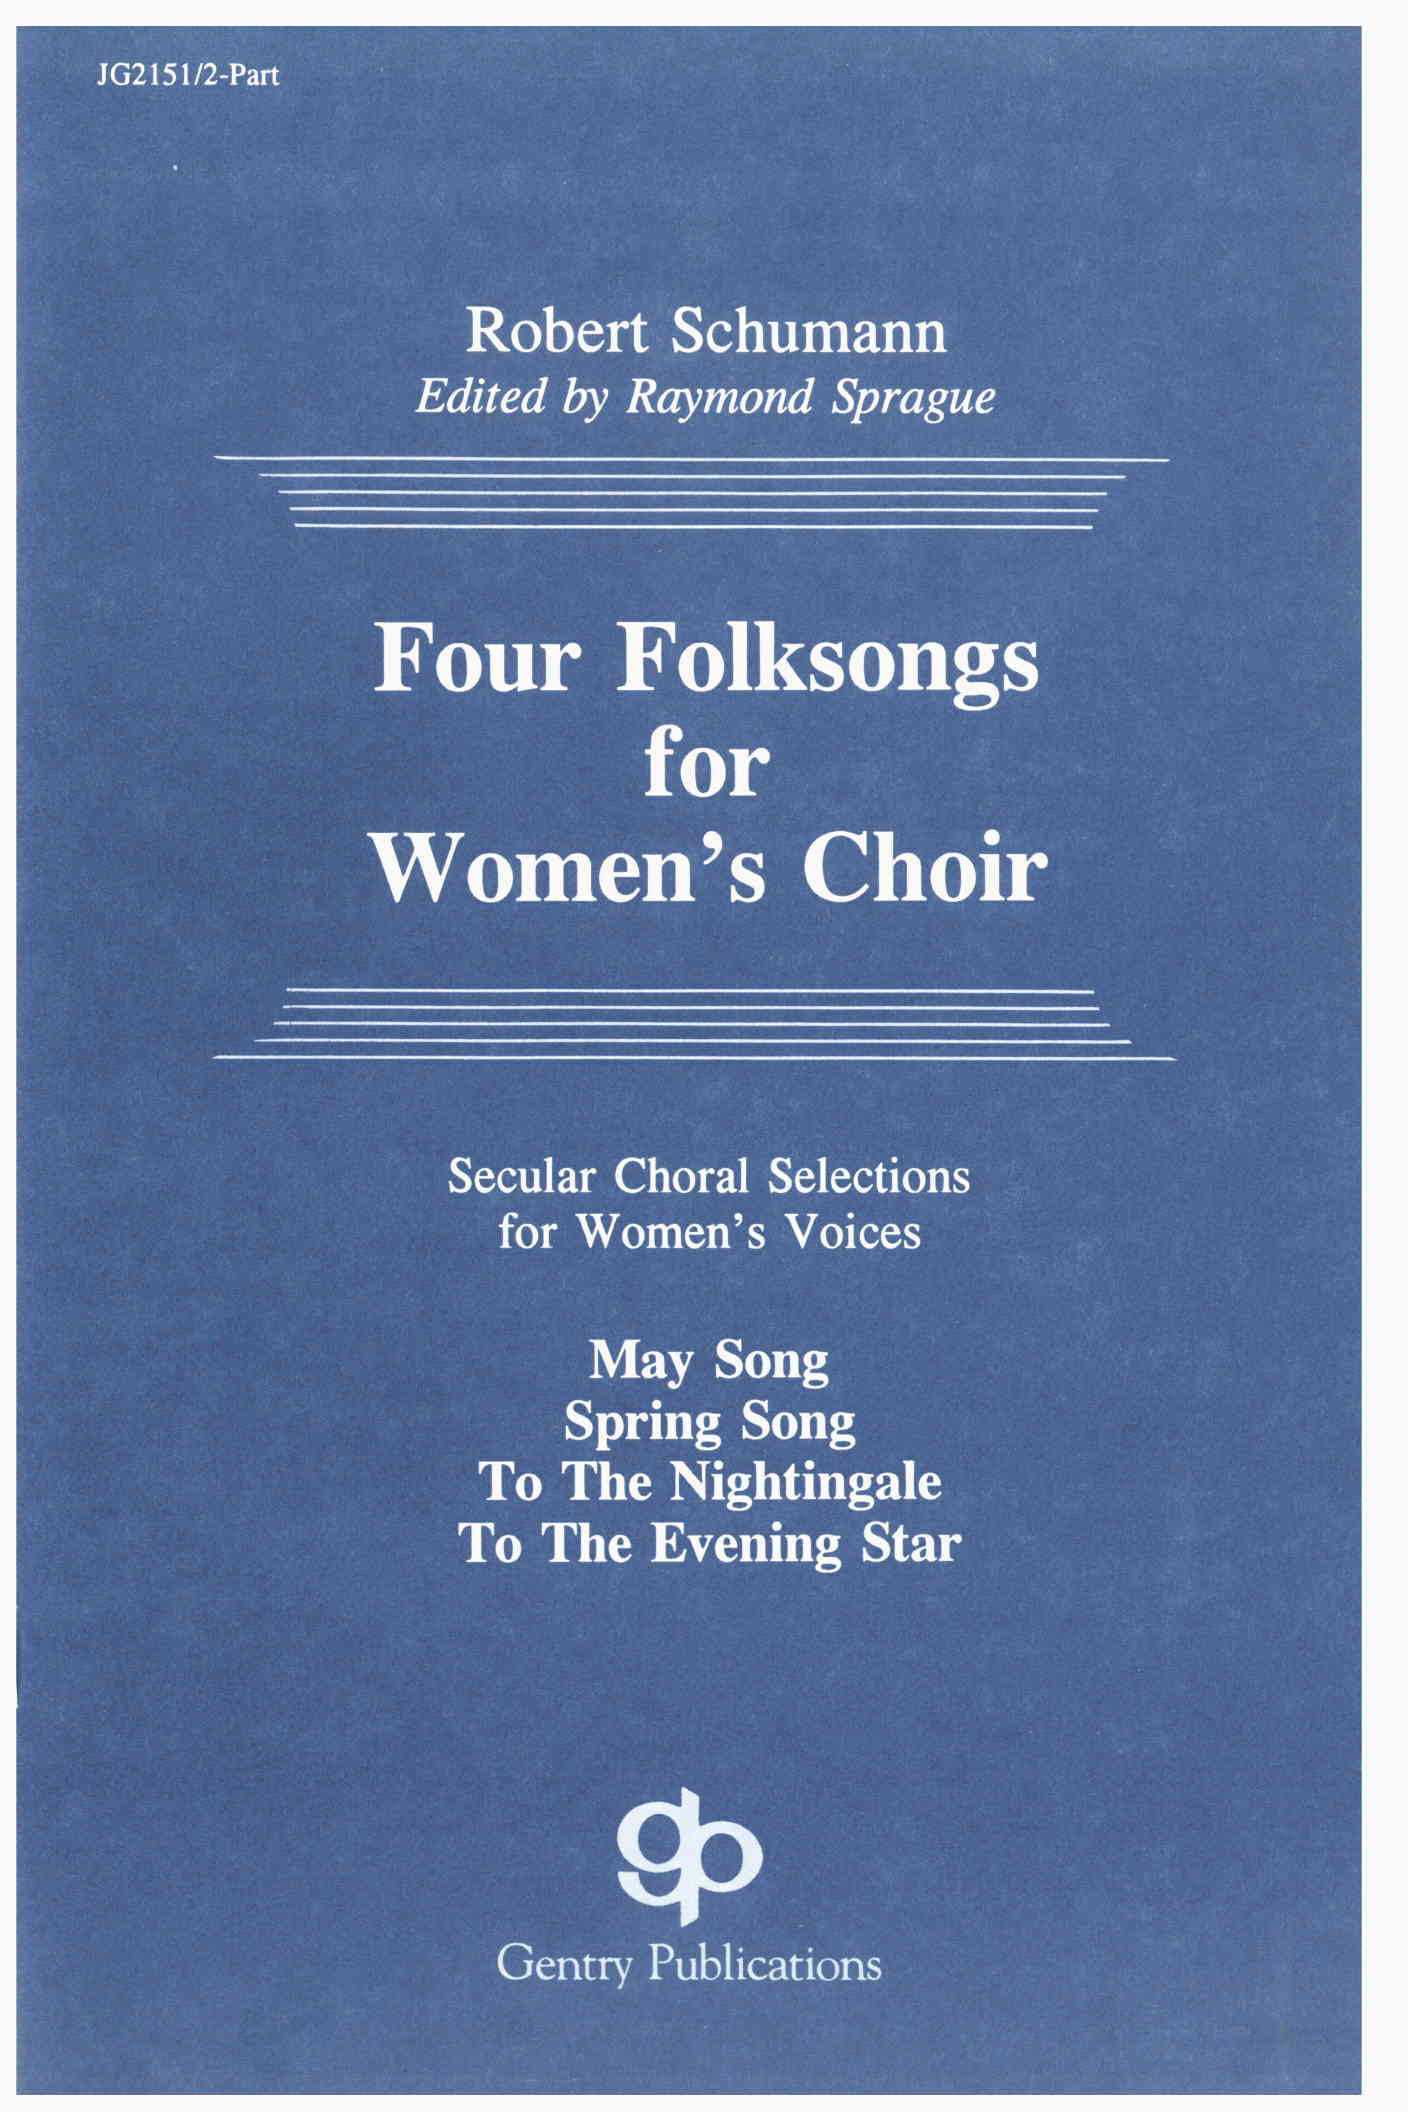 Four Folksongs For Women's Choir